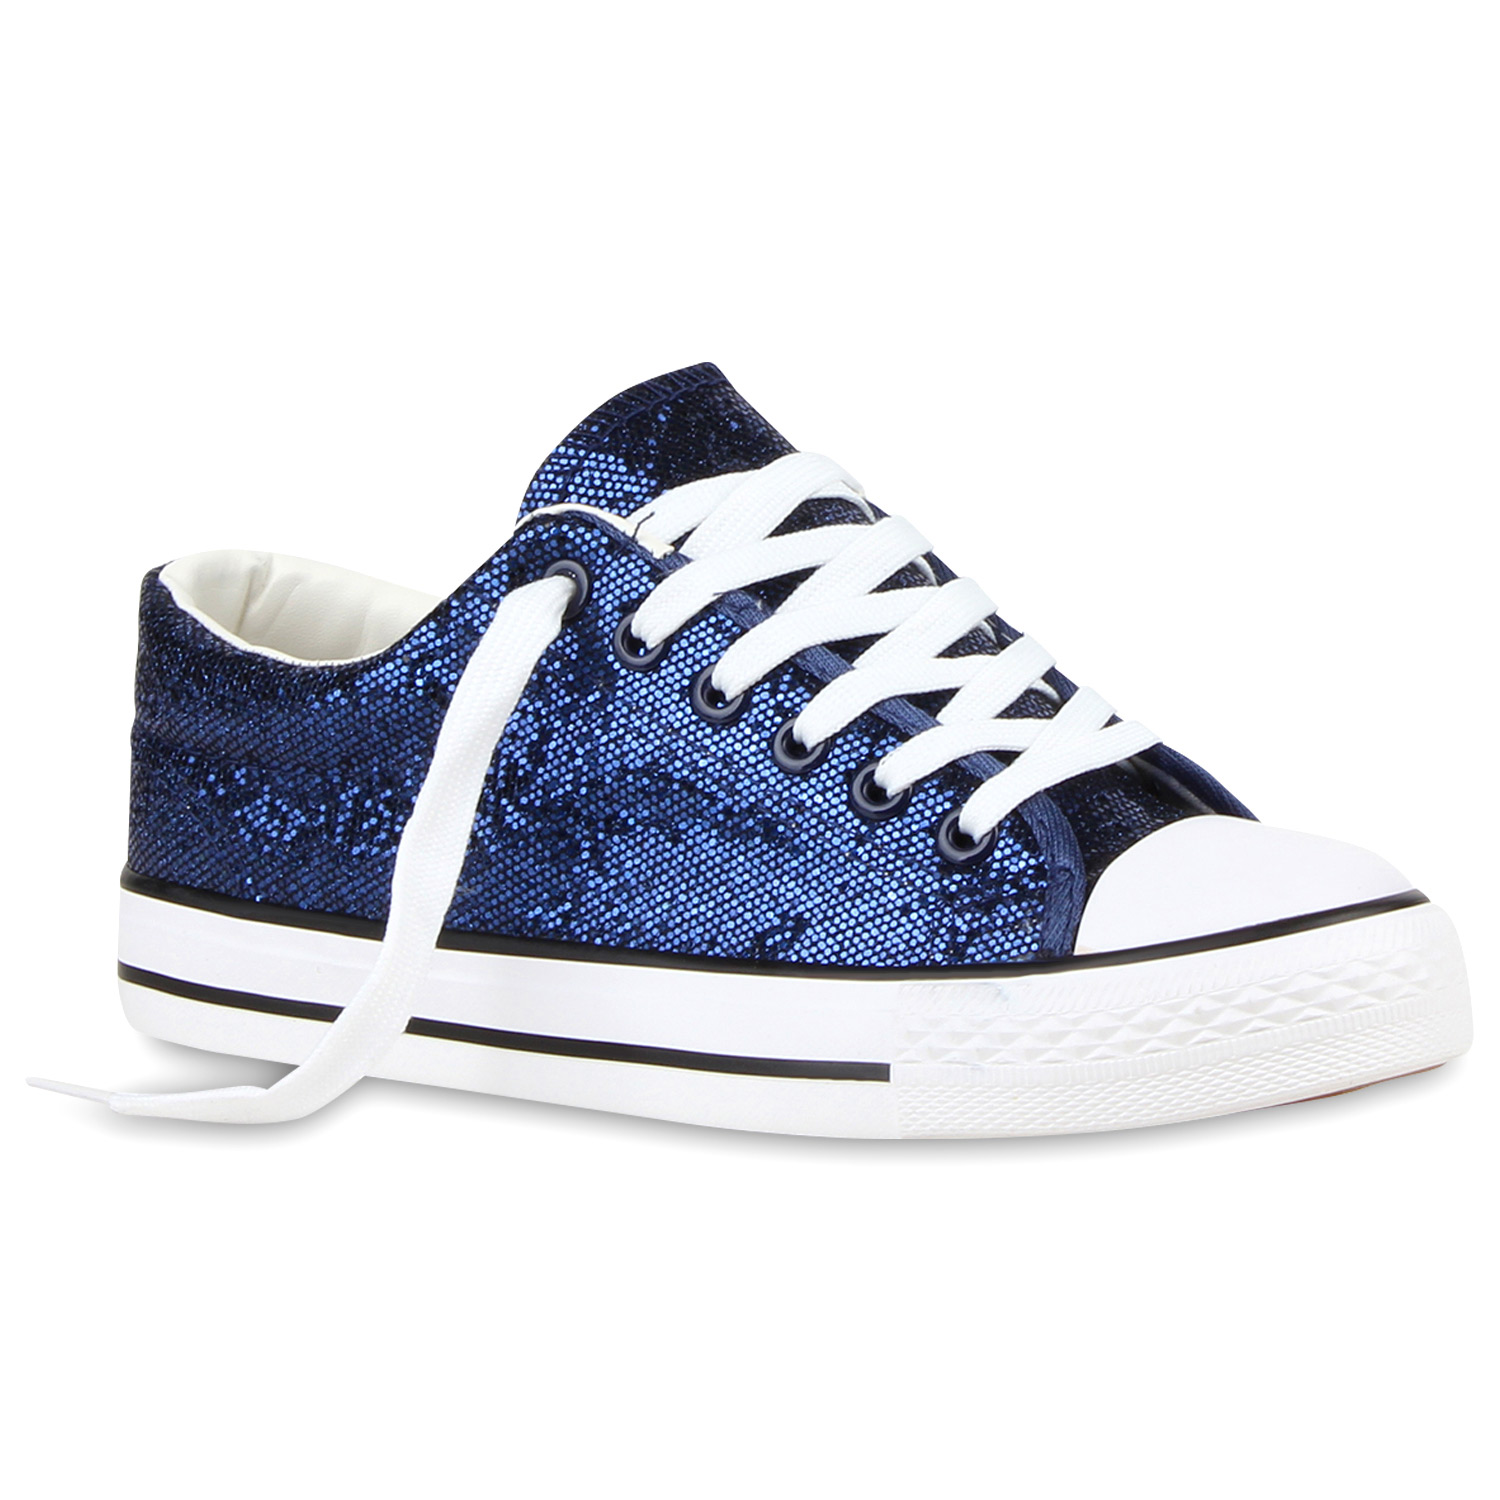 modische damen glitzer sneakers low canvas freizeit schuhe 810996 new look ebay. Black Bedroom Furniture Sets. Home Design Ideas